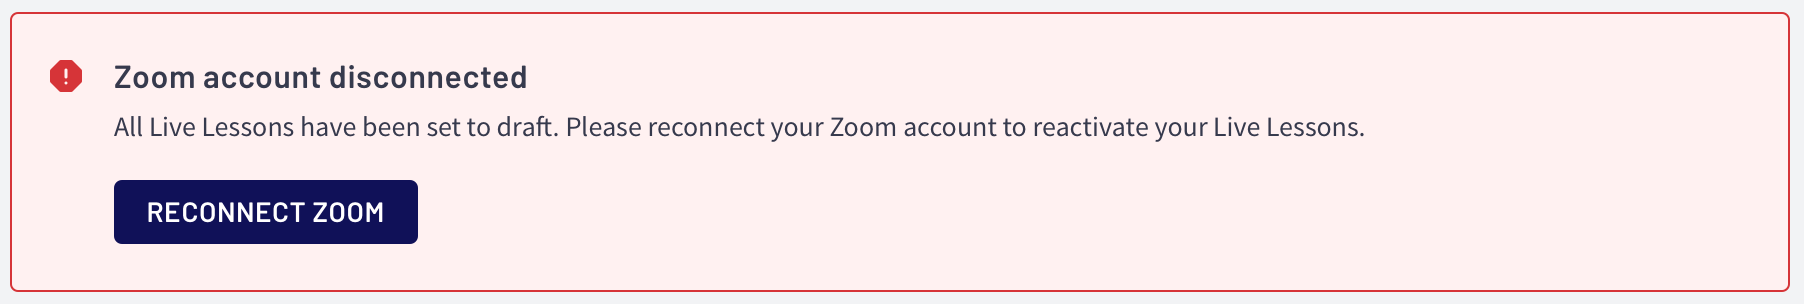 Zoom_account_disconnected.png